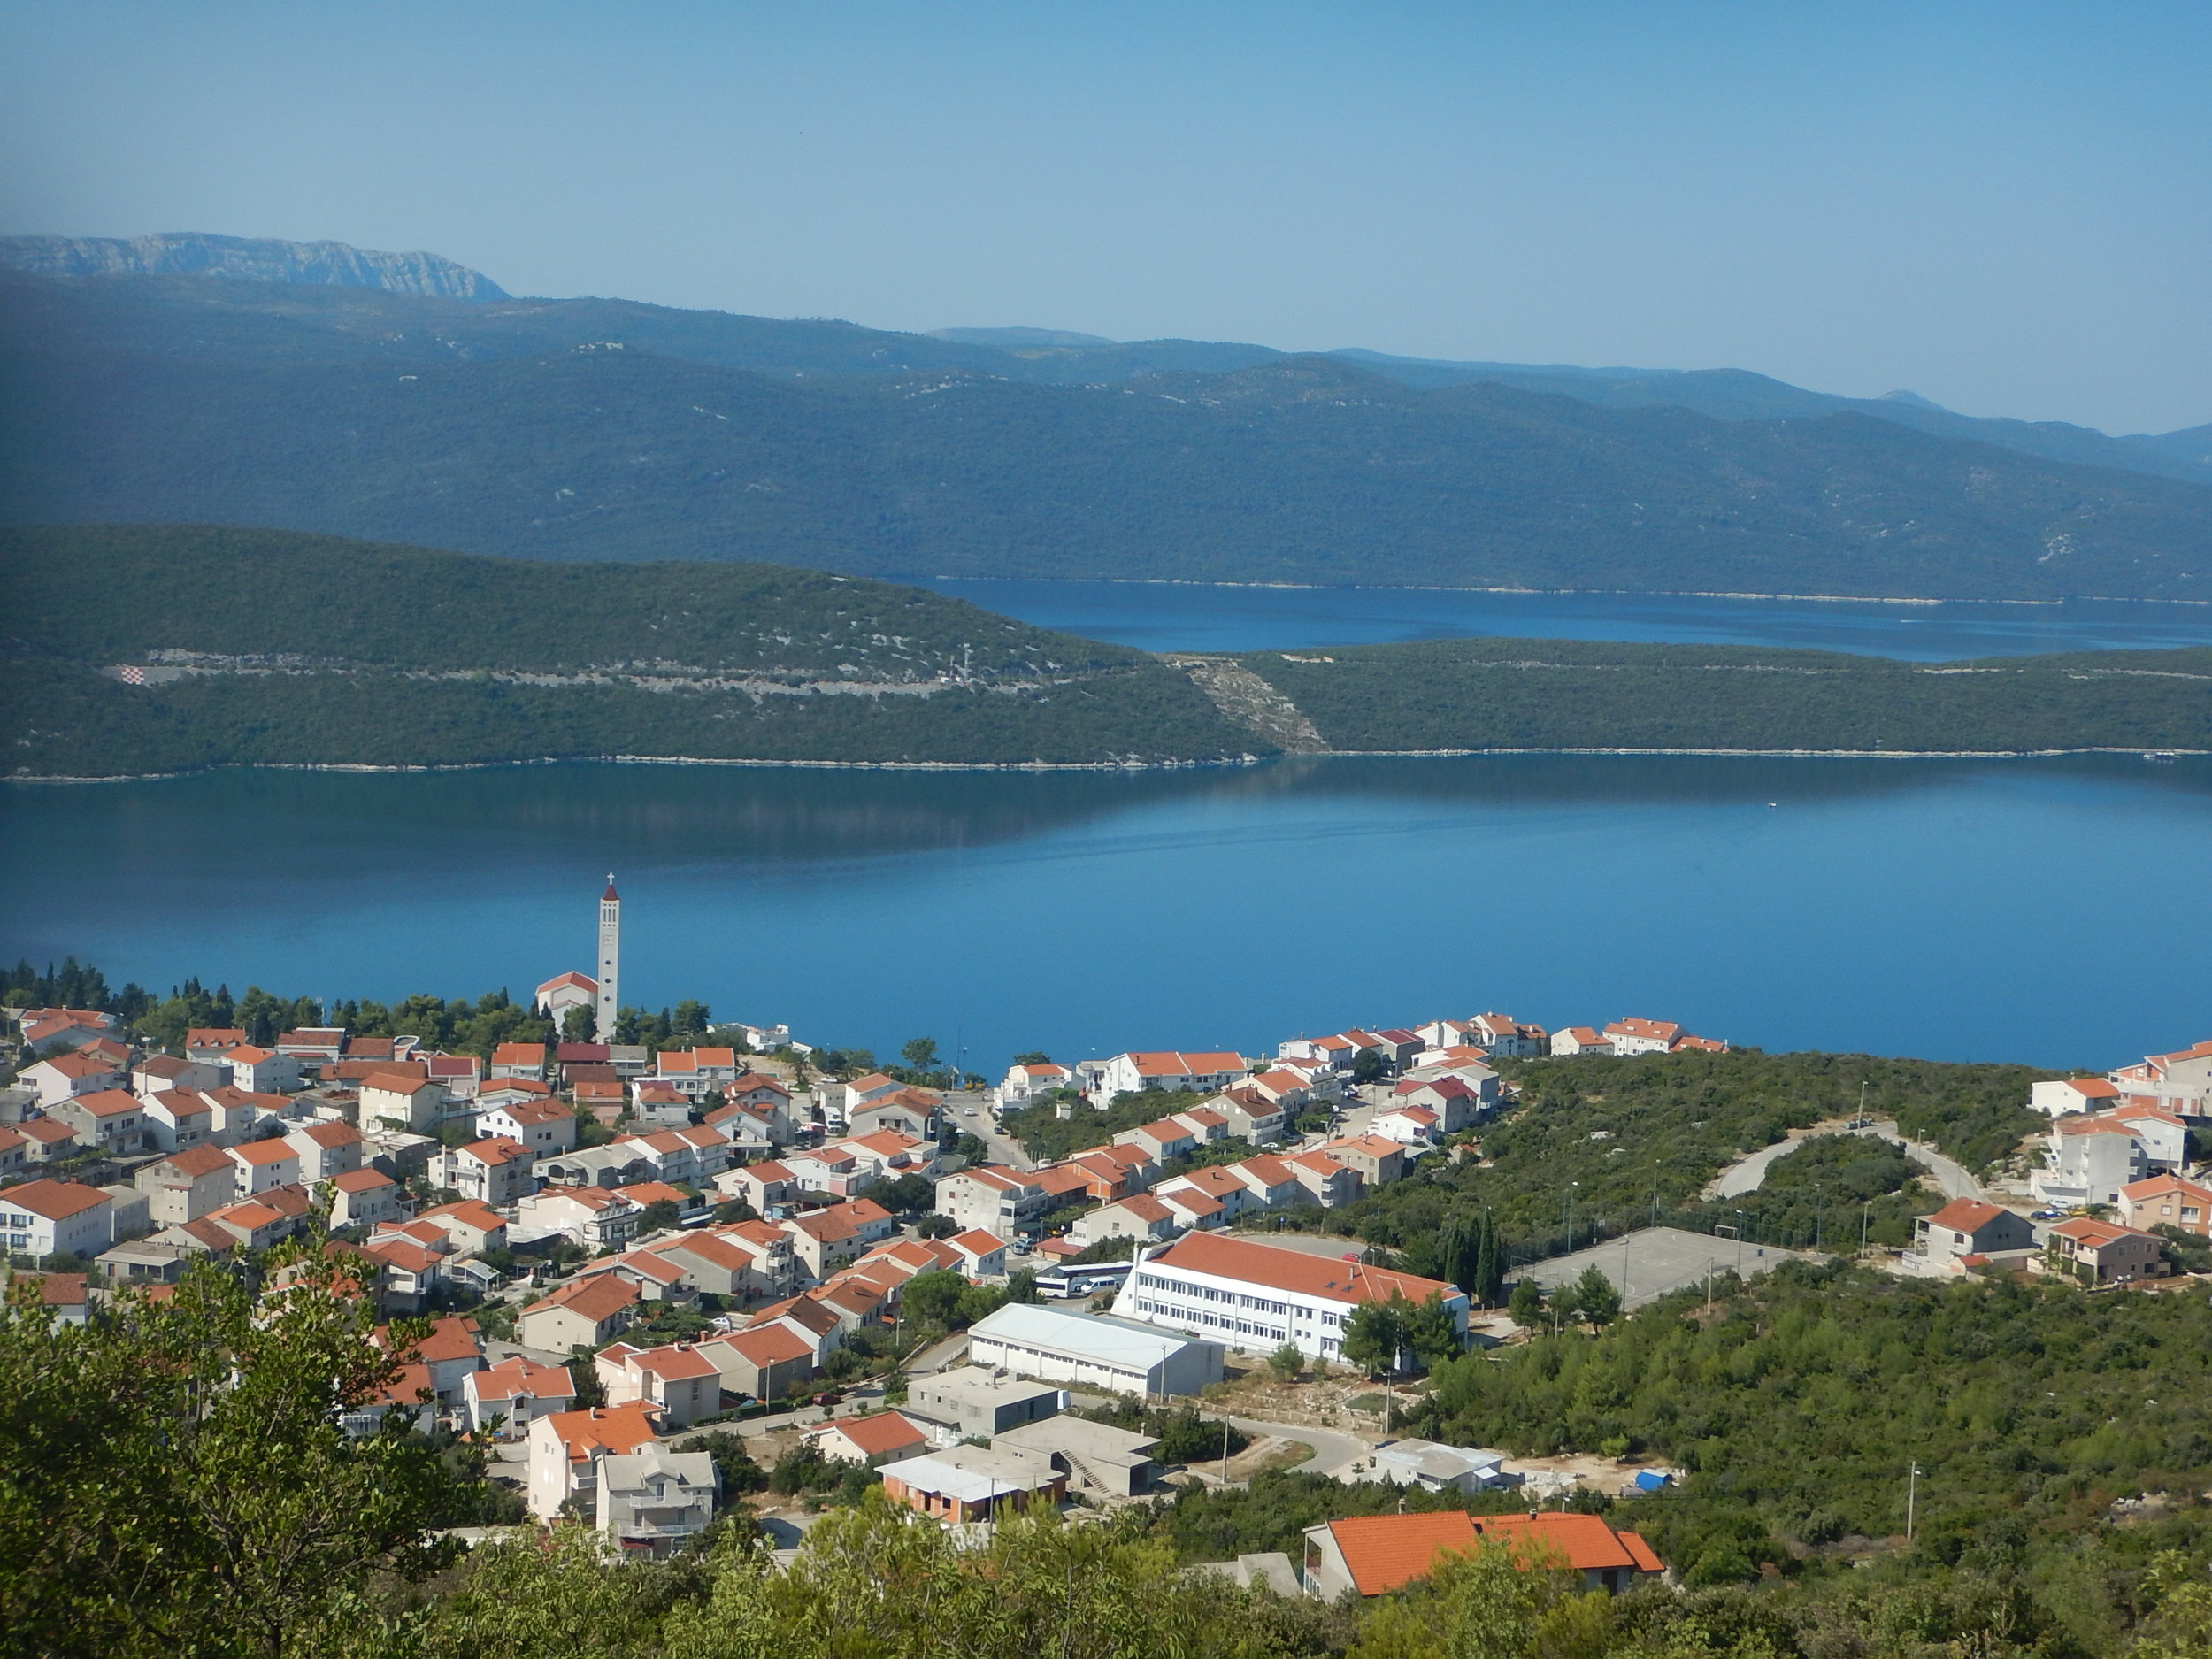 over the hill and back into Croatia and the Mediteranean Coast where the Neretva silently flows out to sea.